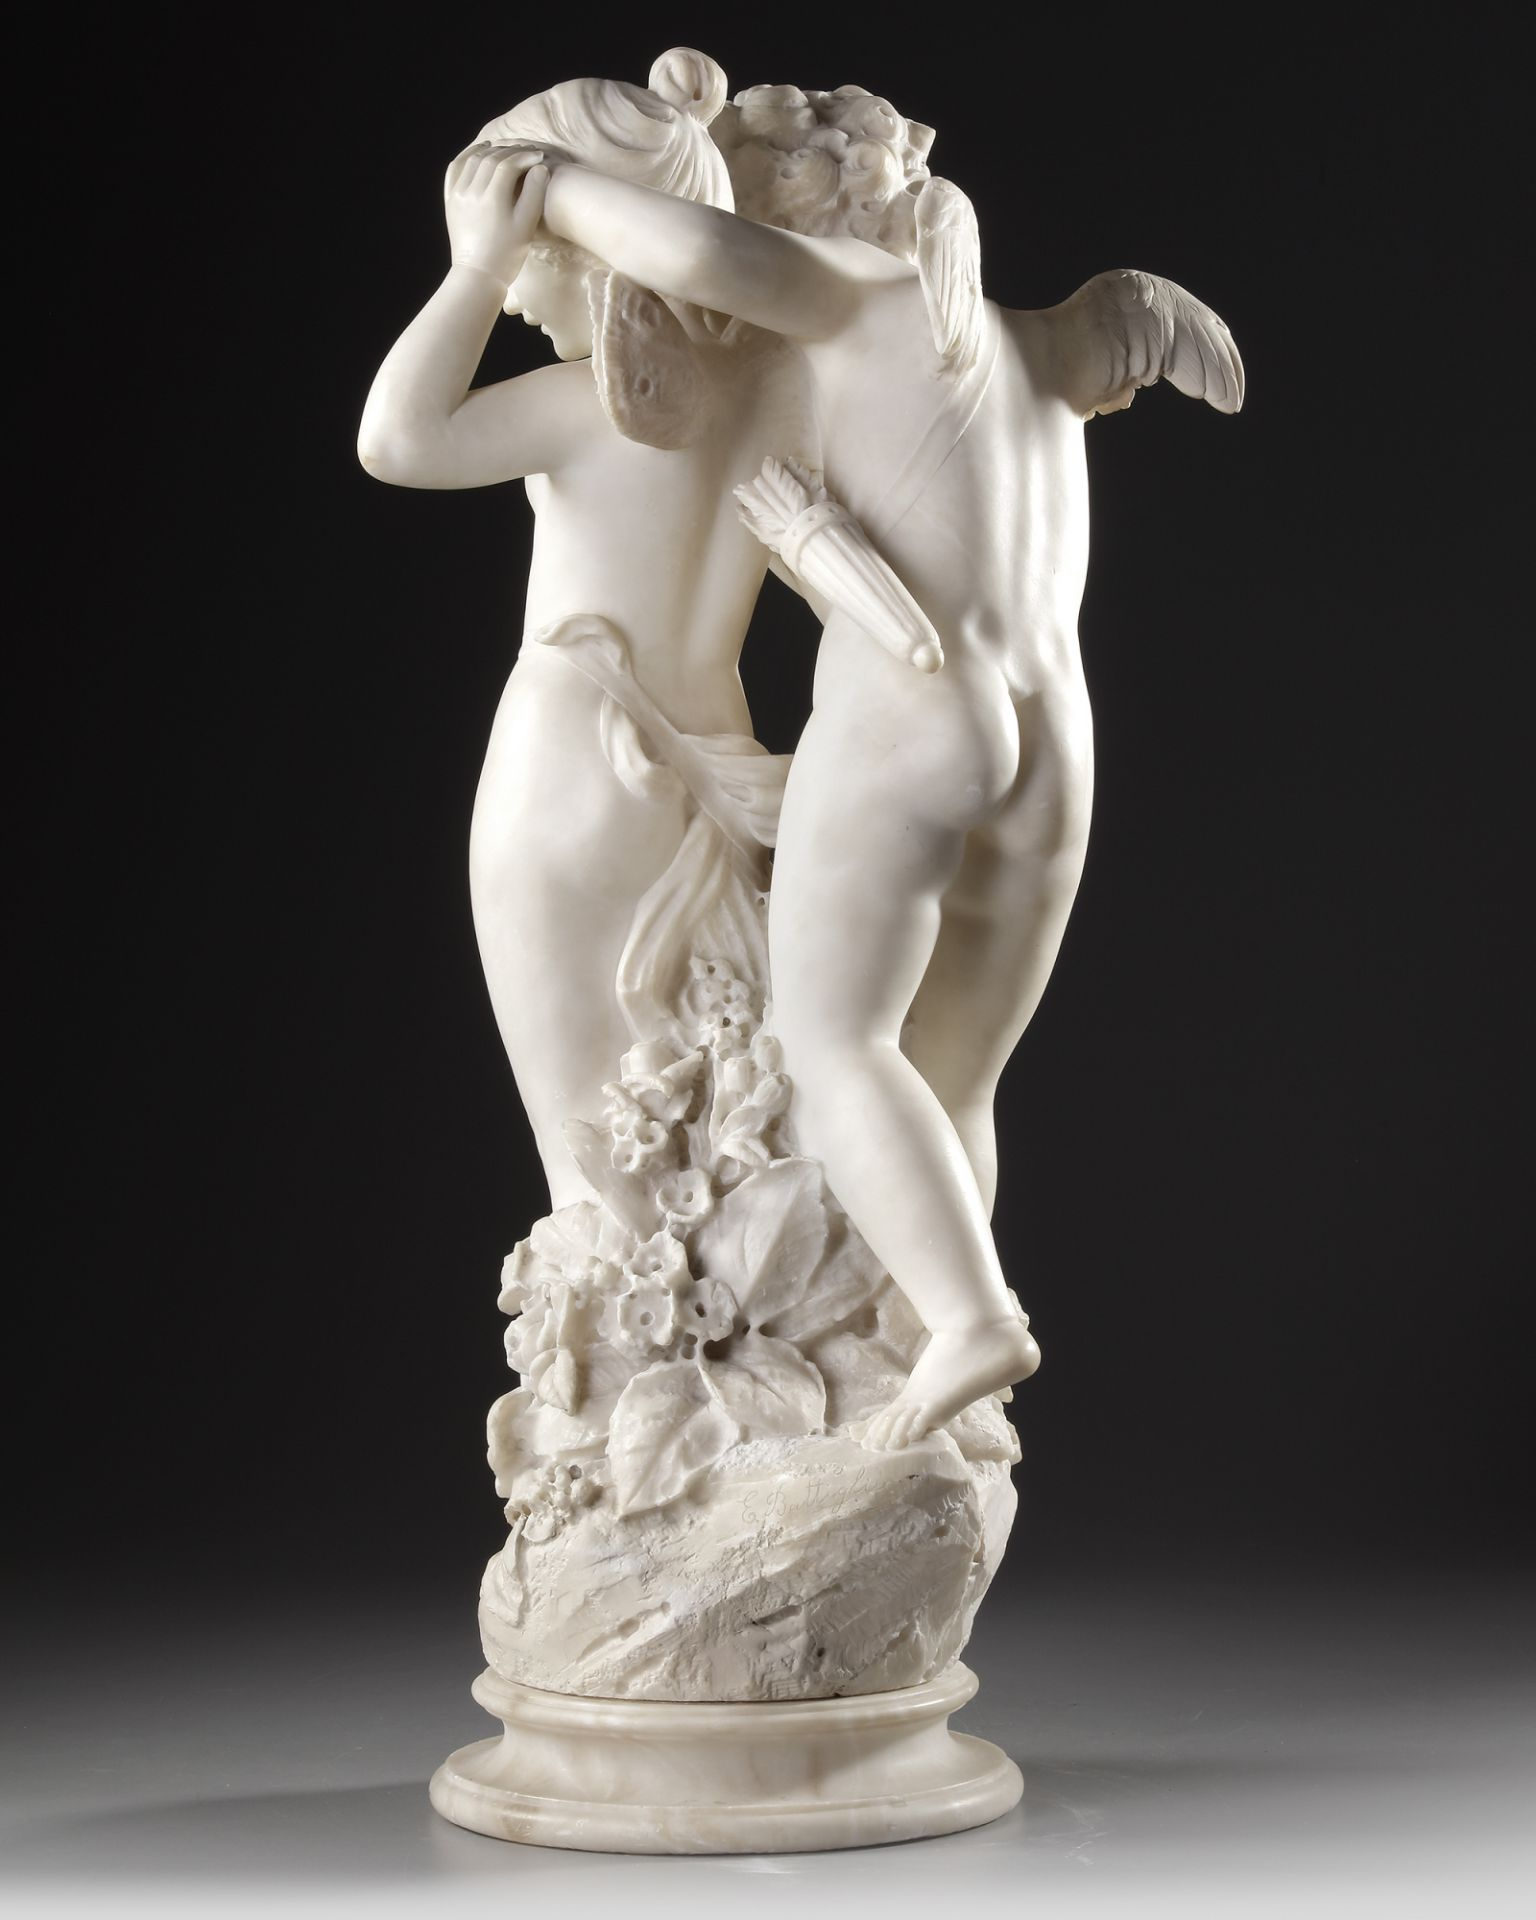 AN ITALIAN SCULPTURE, LATE 19TH CENTURY - Image 3 of 5